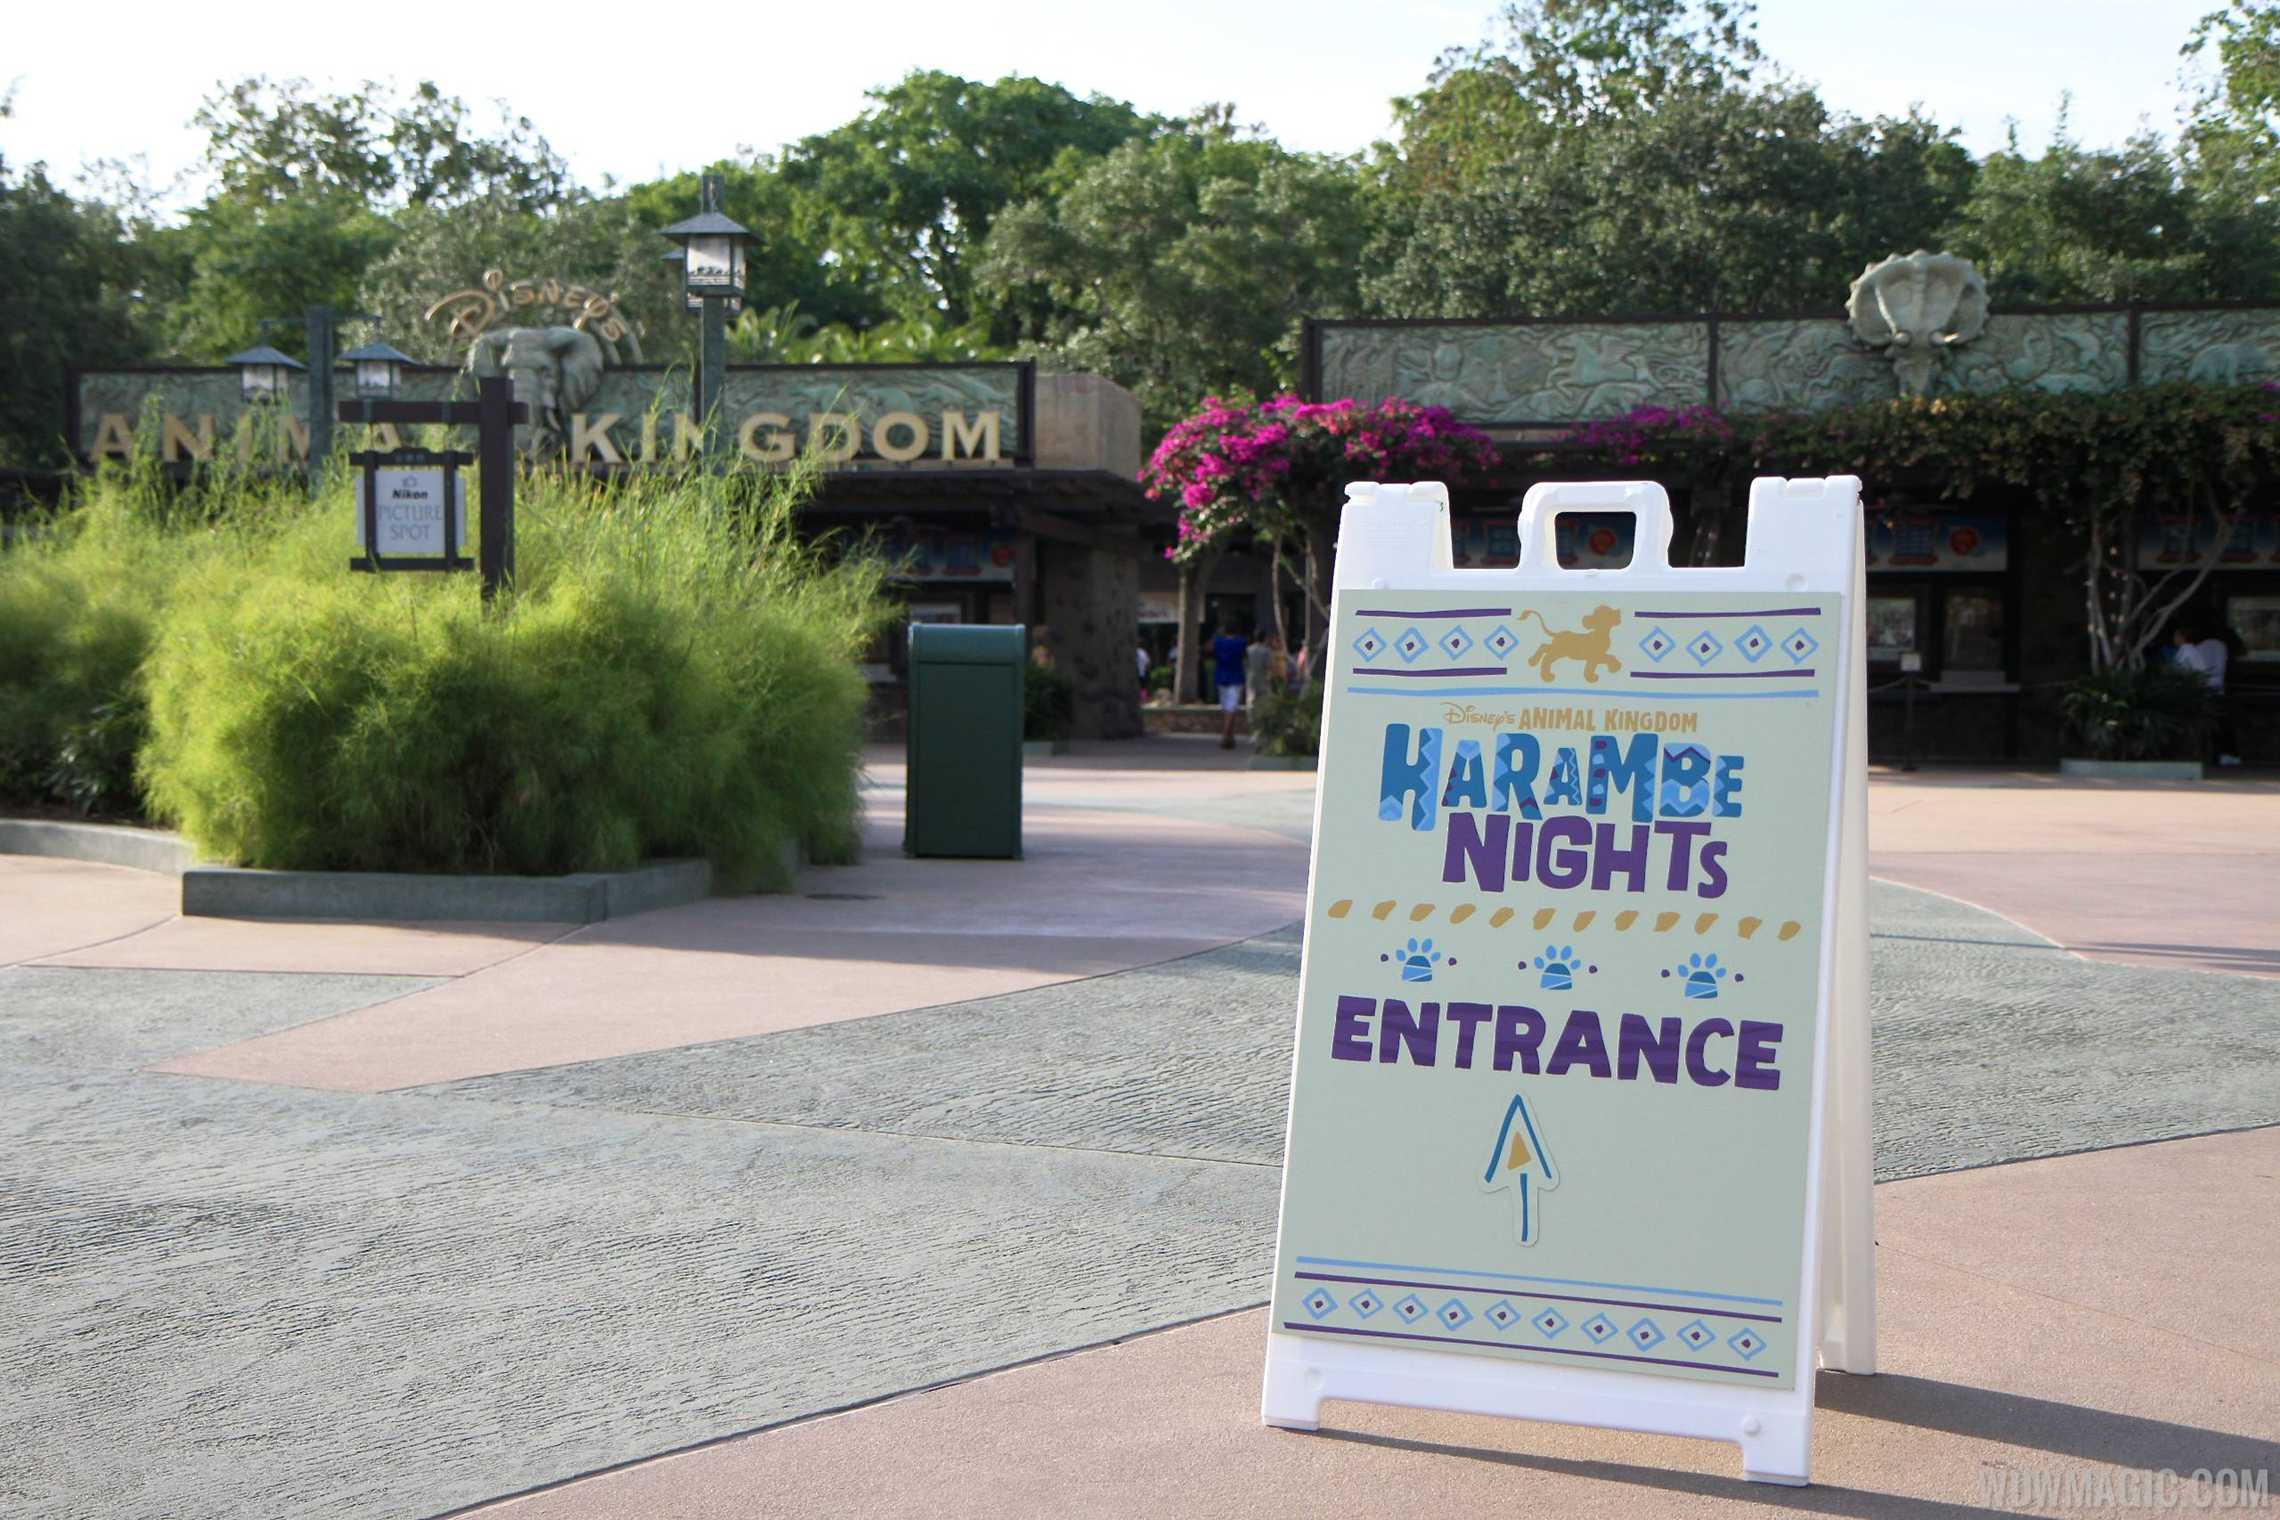 Harambe Nights - Main entrance signage